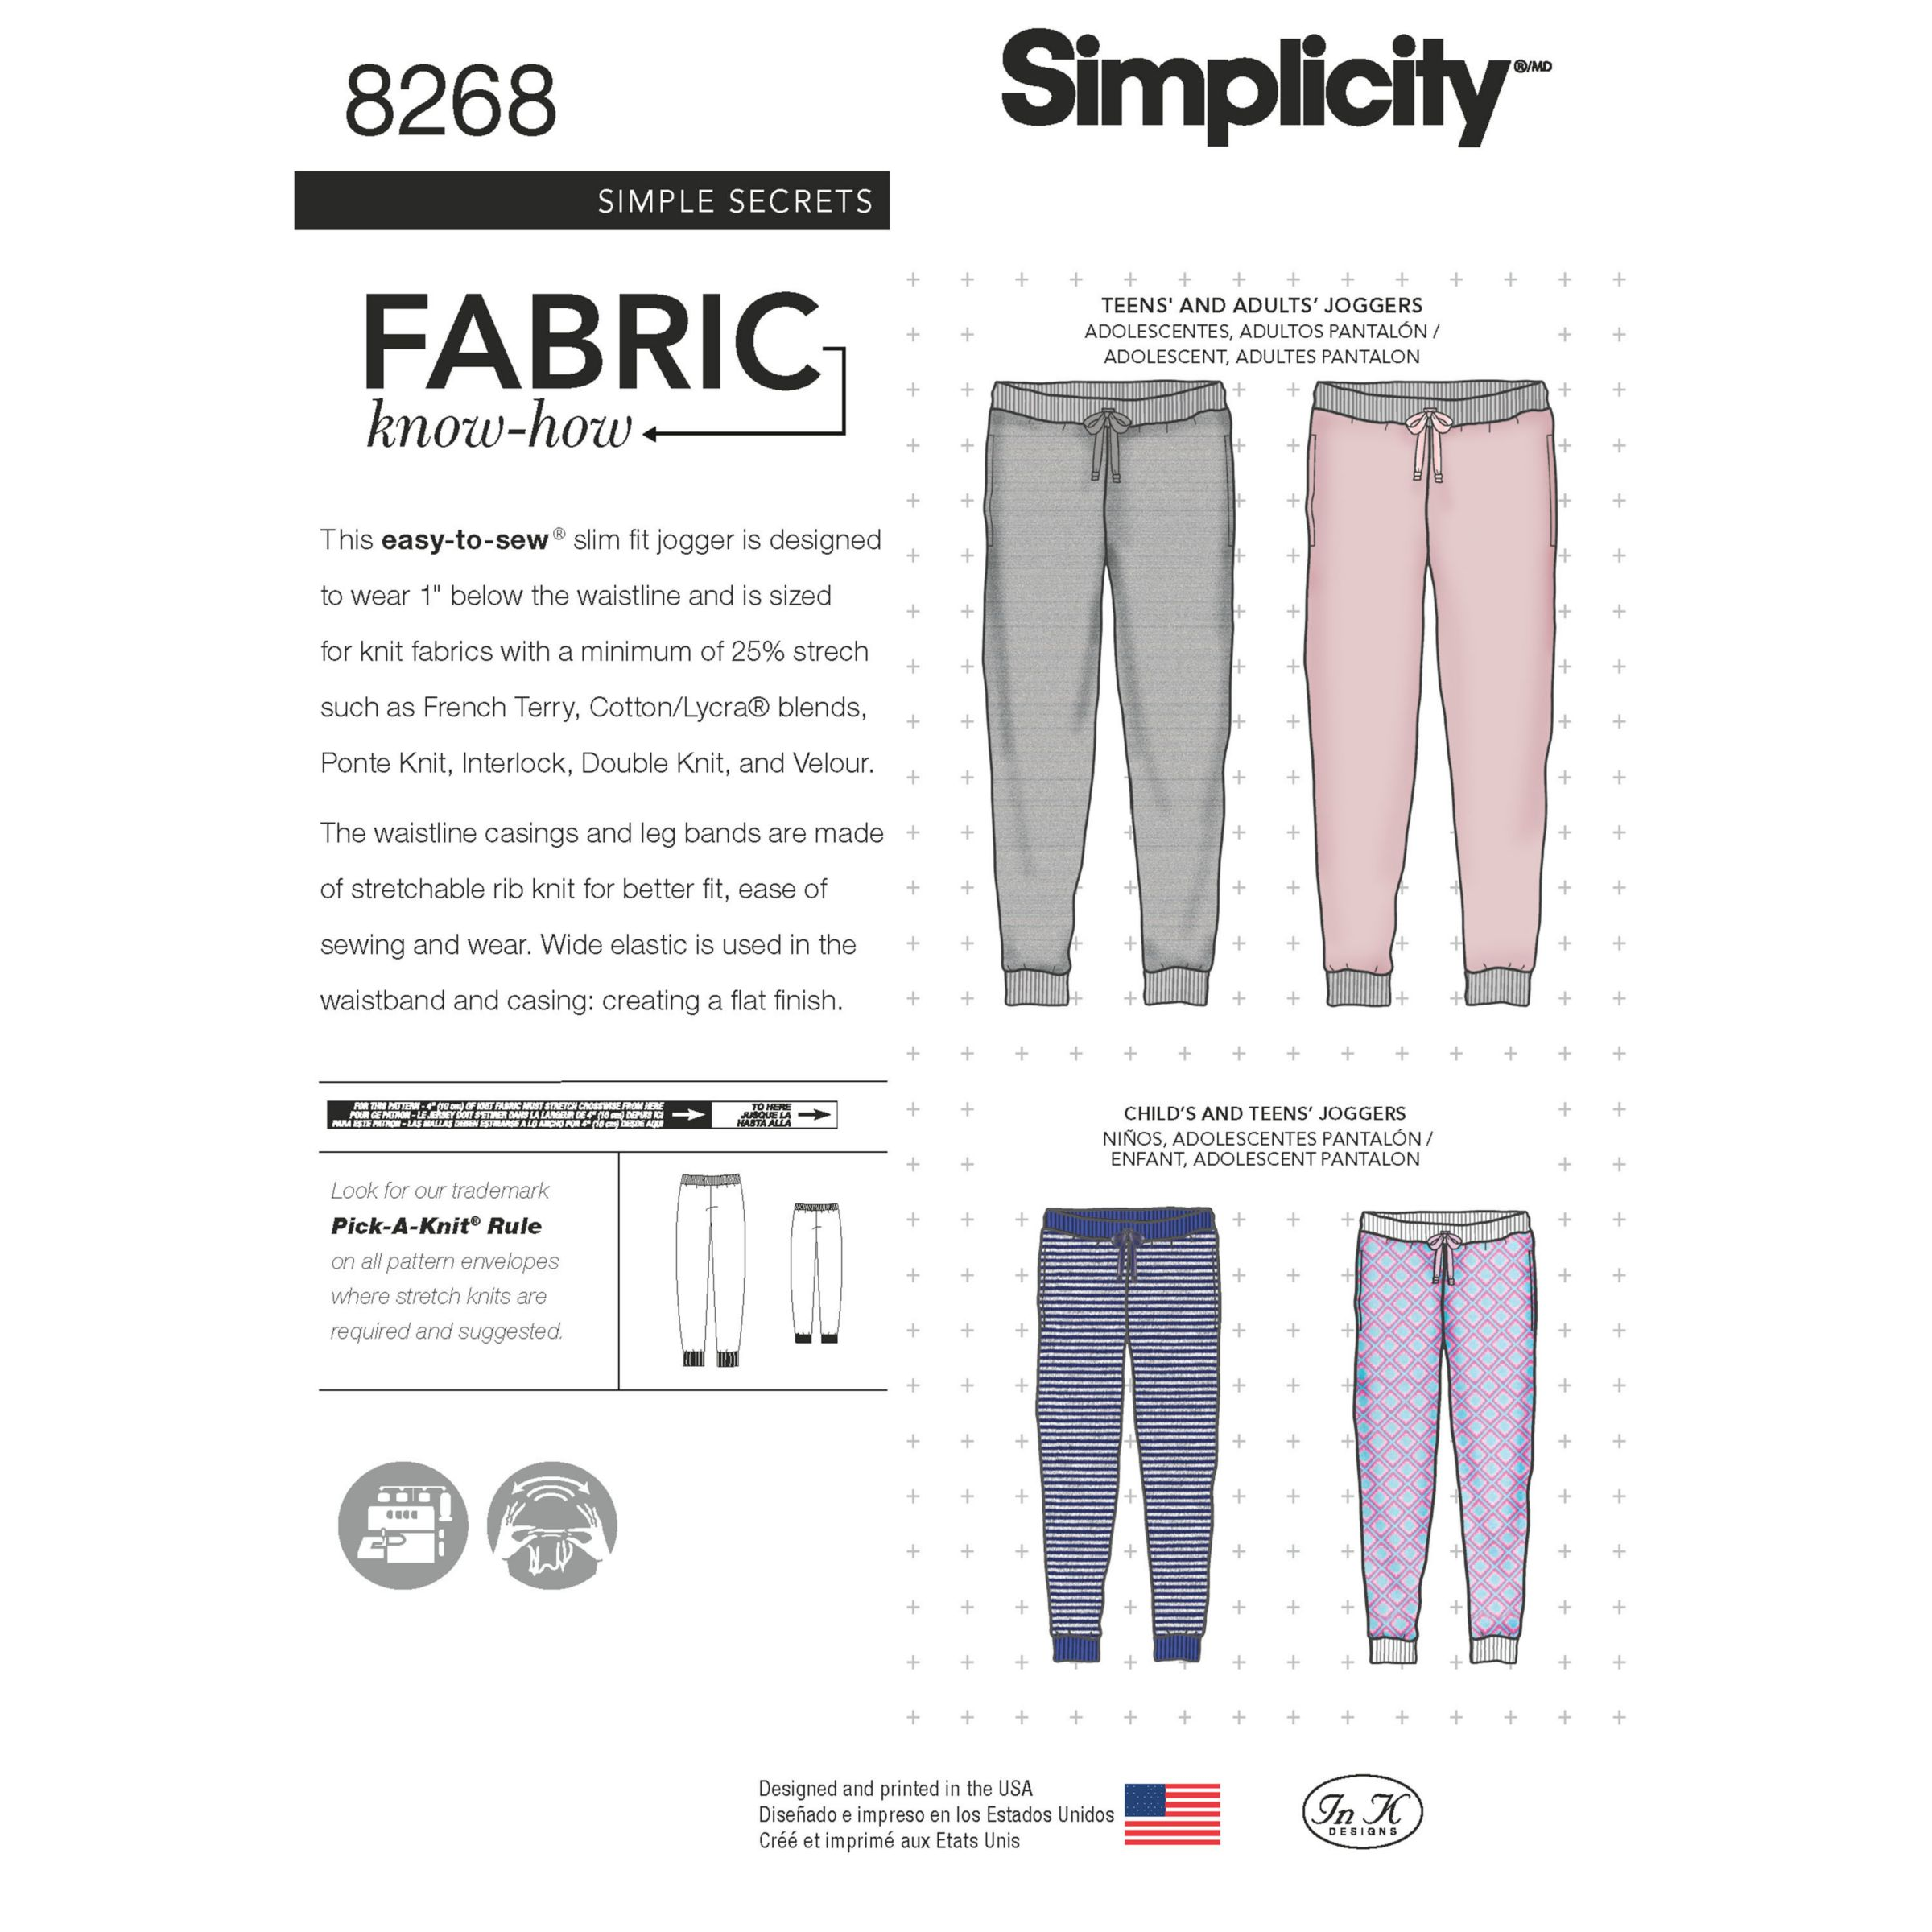 Simplicity Simplicity Unisex Slim Fit Knit Joggers Sewing Pattern, 8268, A